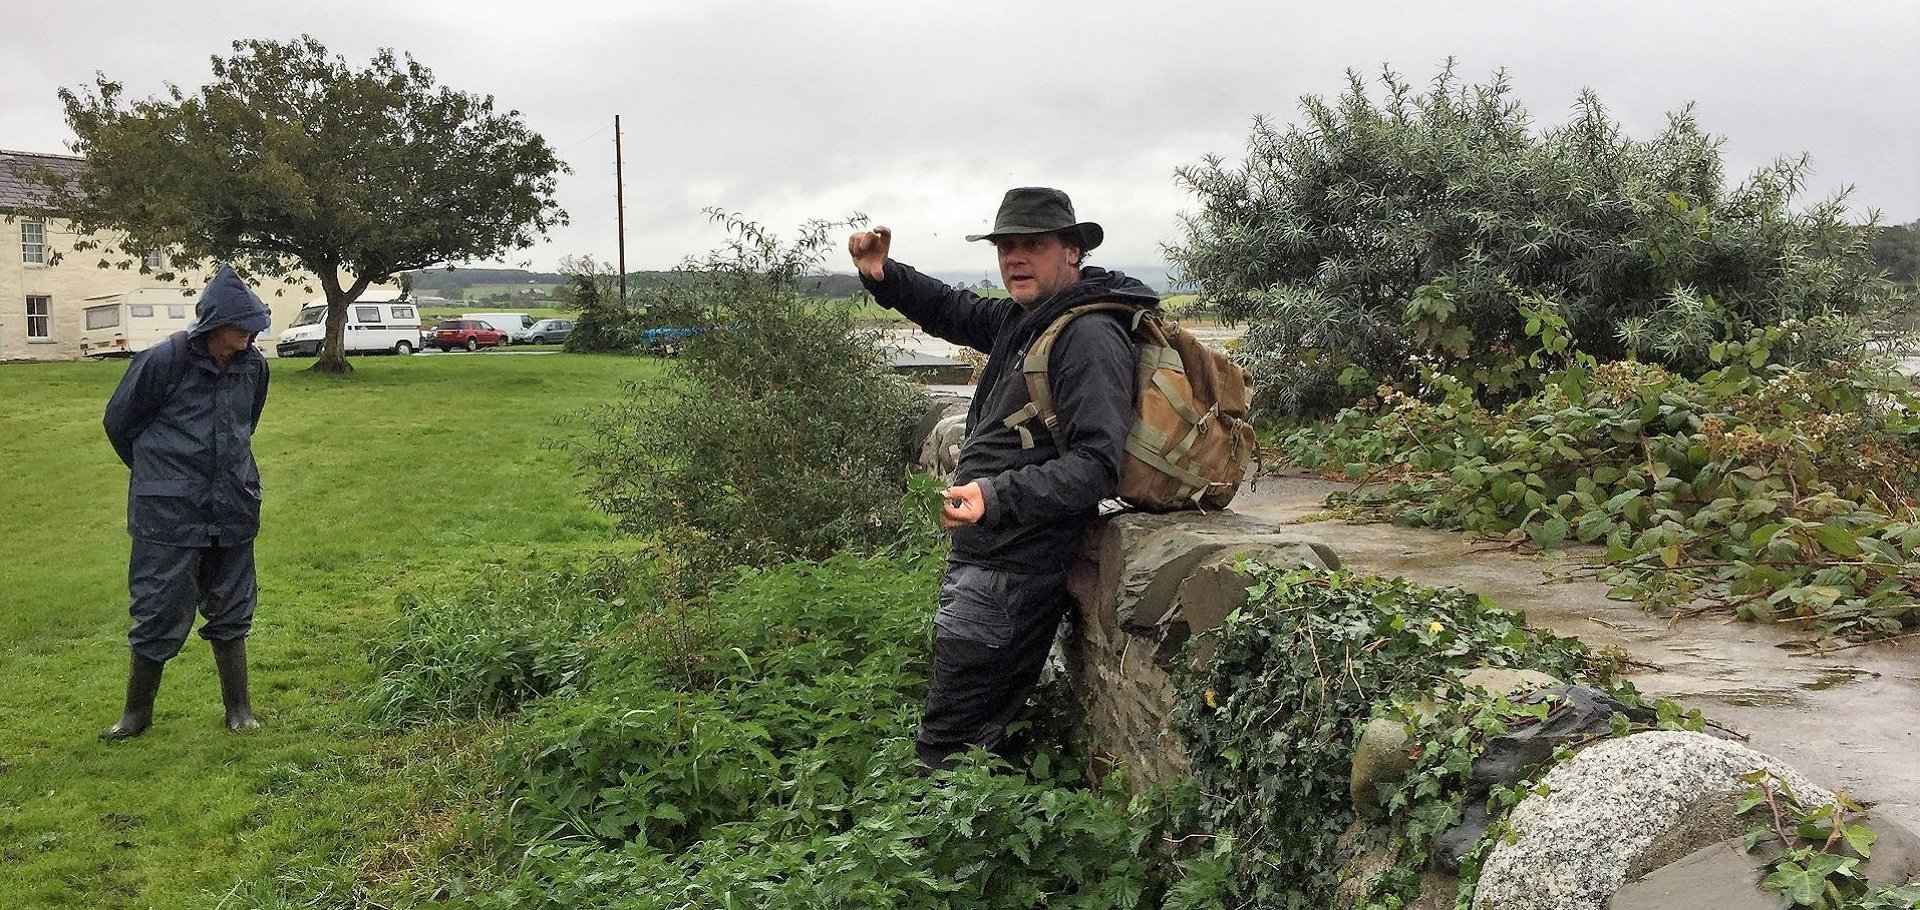 Foraging for wild foods in Dumfries and Galloway with Mark Williams of Galloway Wild Foods